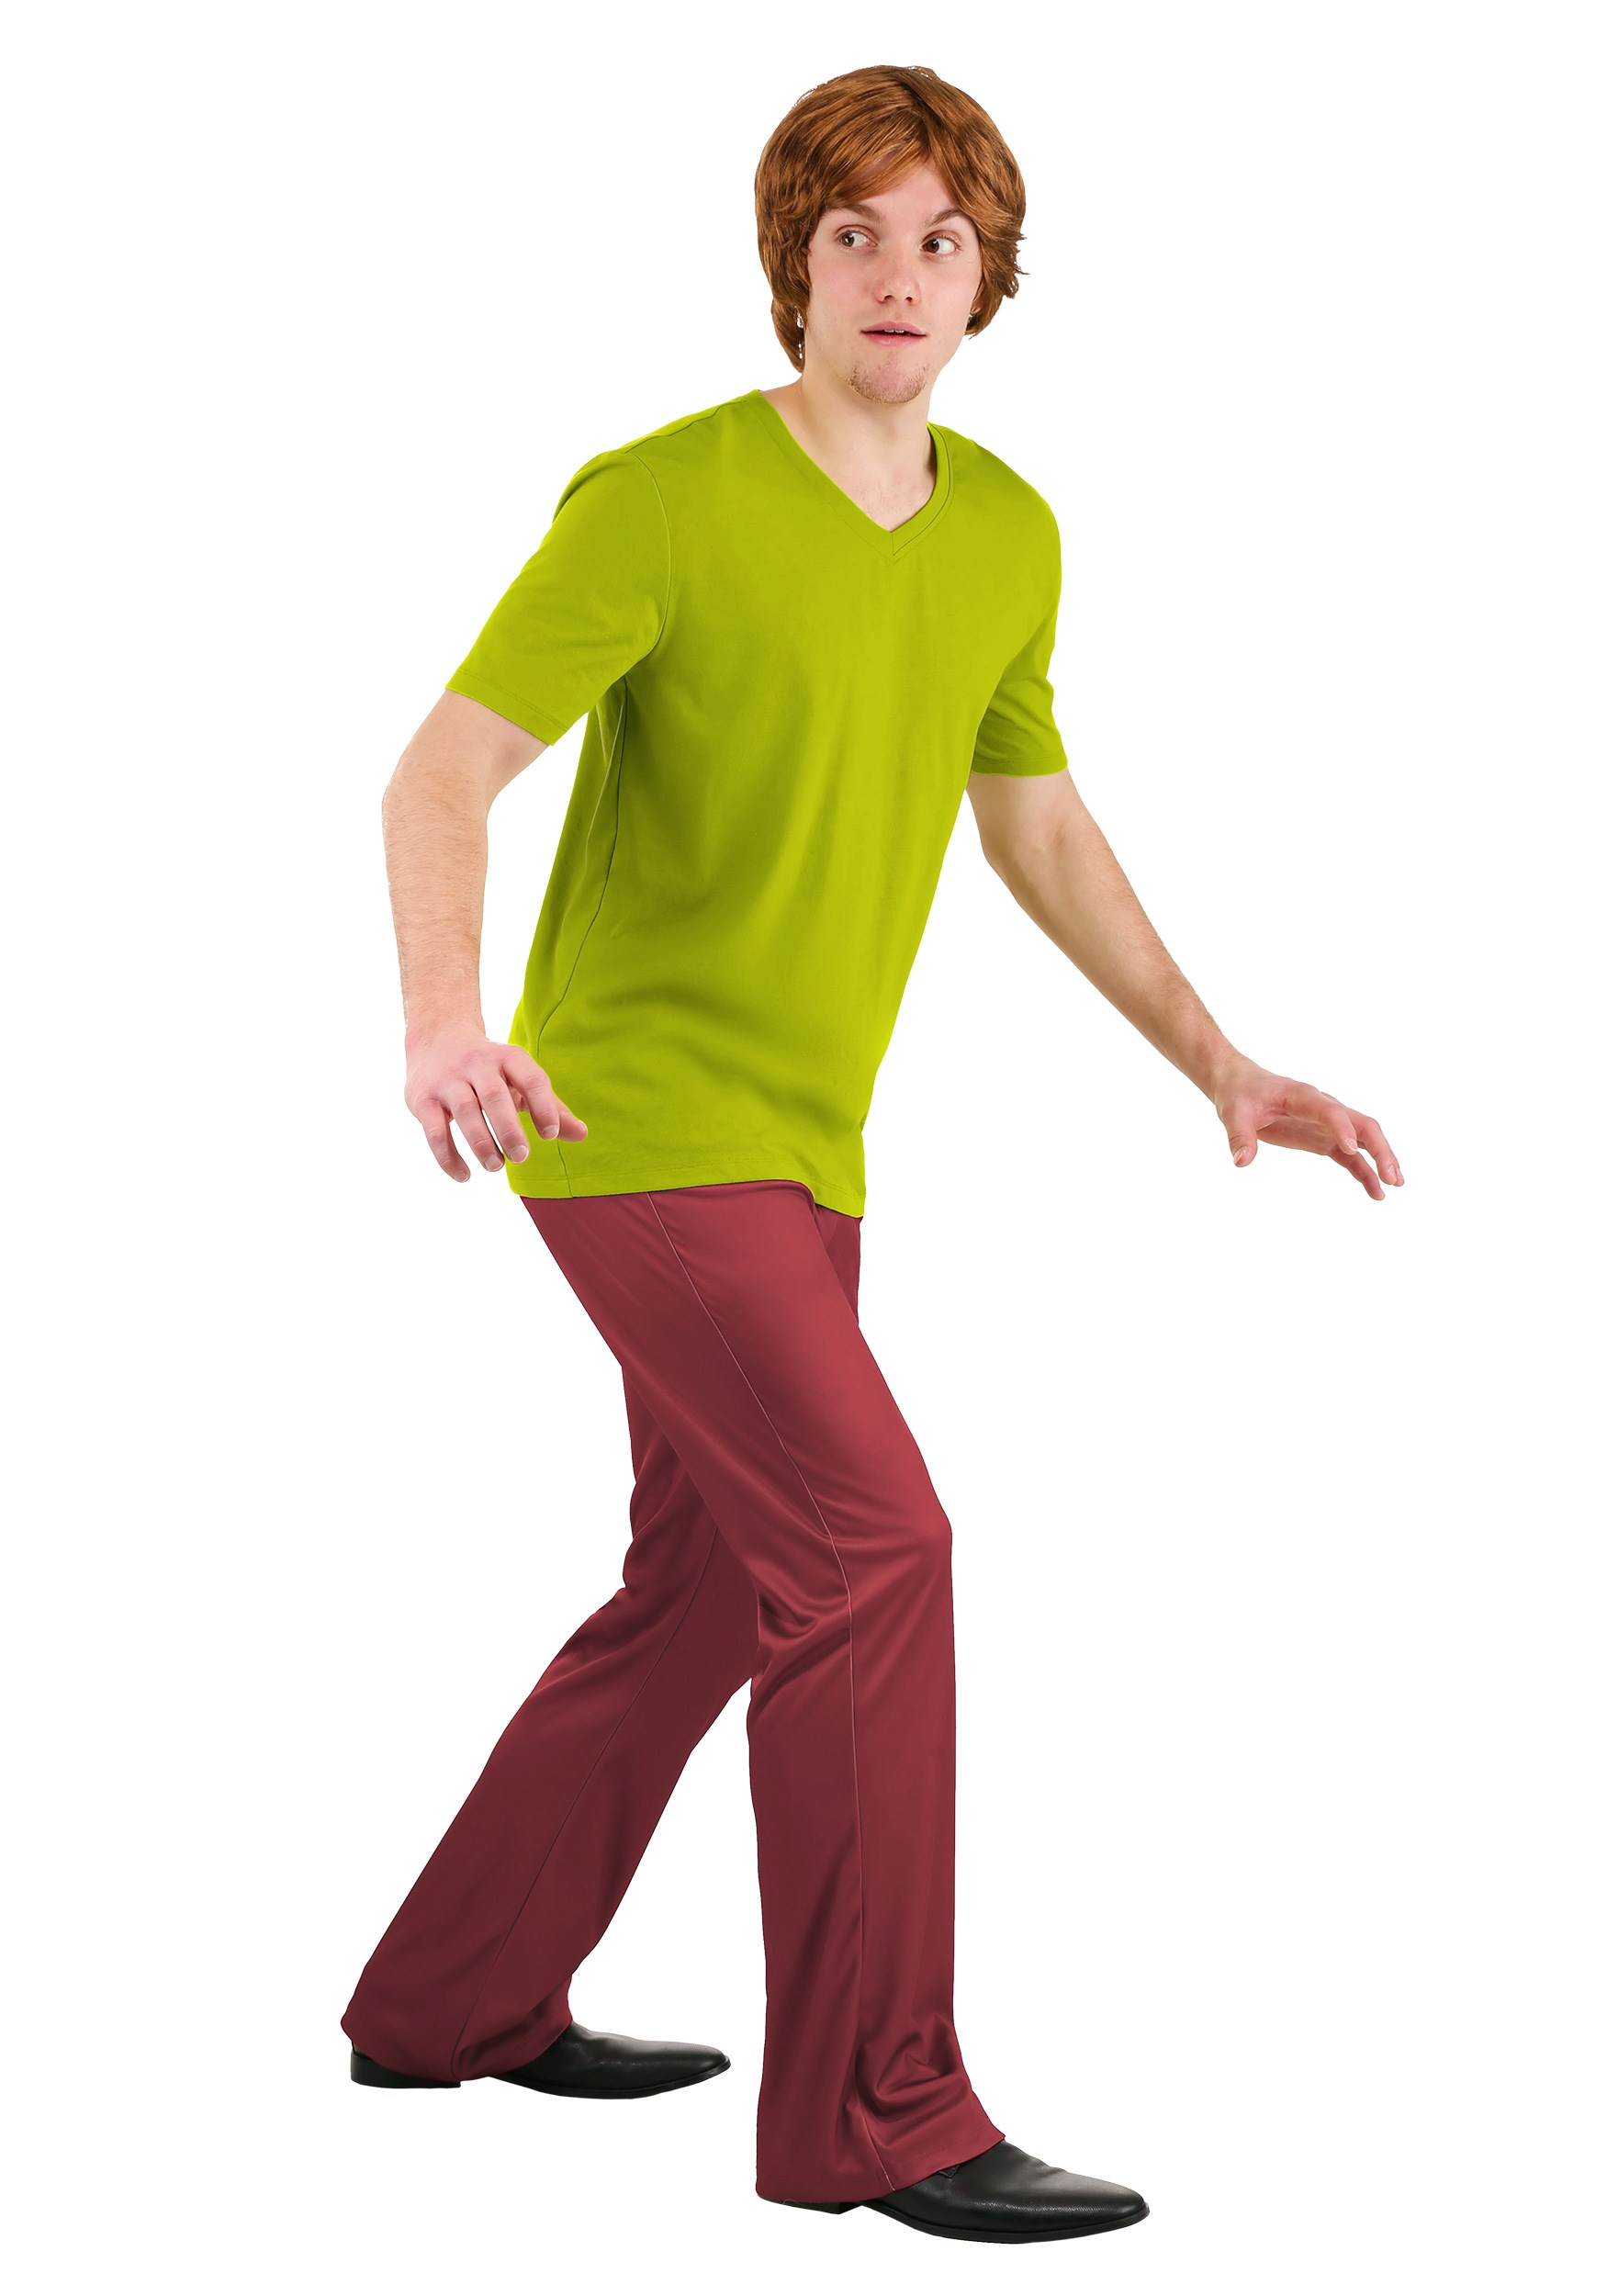 Classic Scooby Doo Shaggy Costume for Men